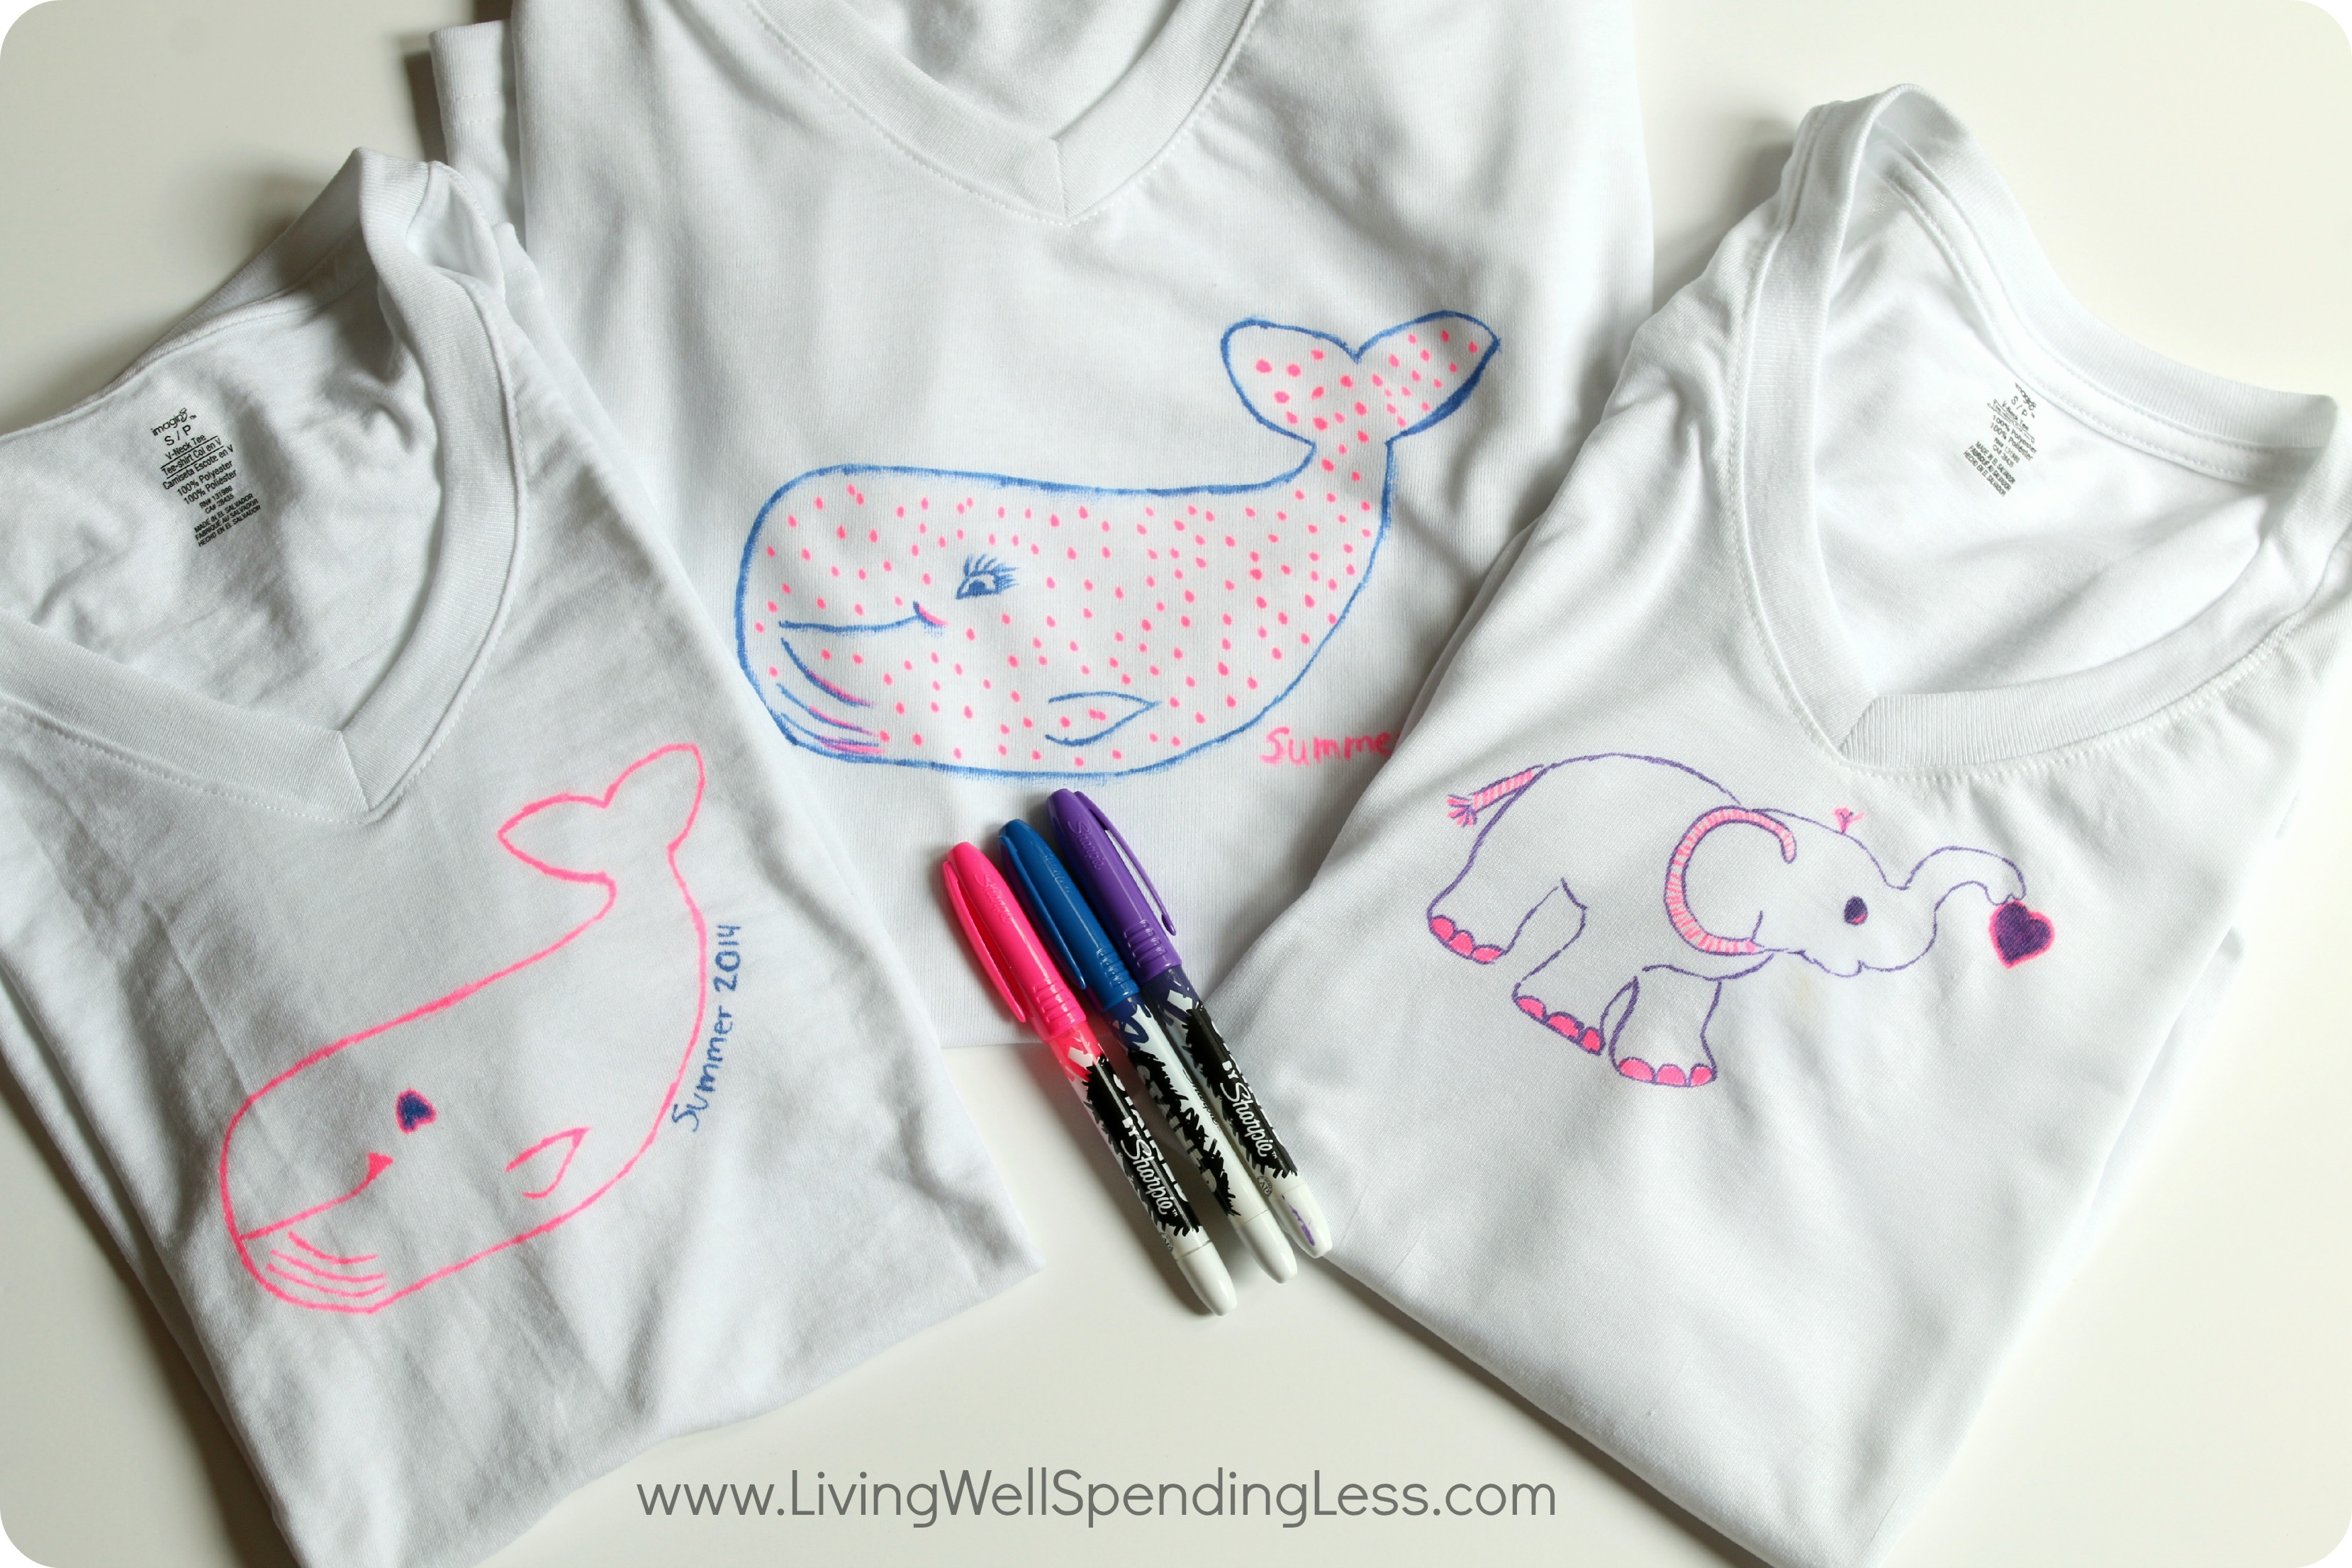 Diy sharpie stained t shirts diy t shirt diy crafts for How to put a picture on a shirt diy